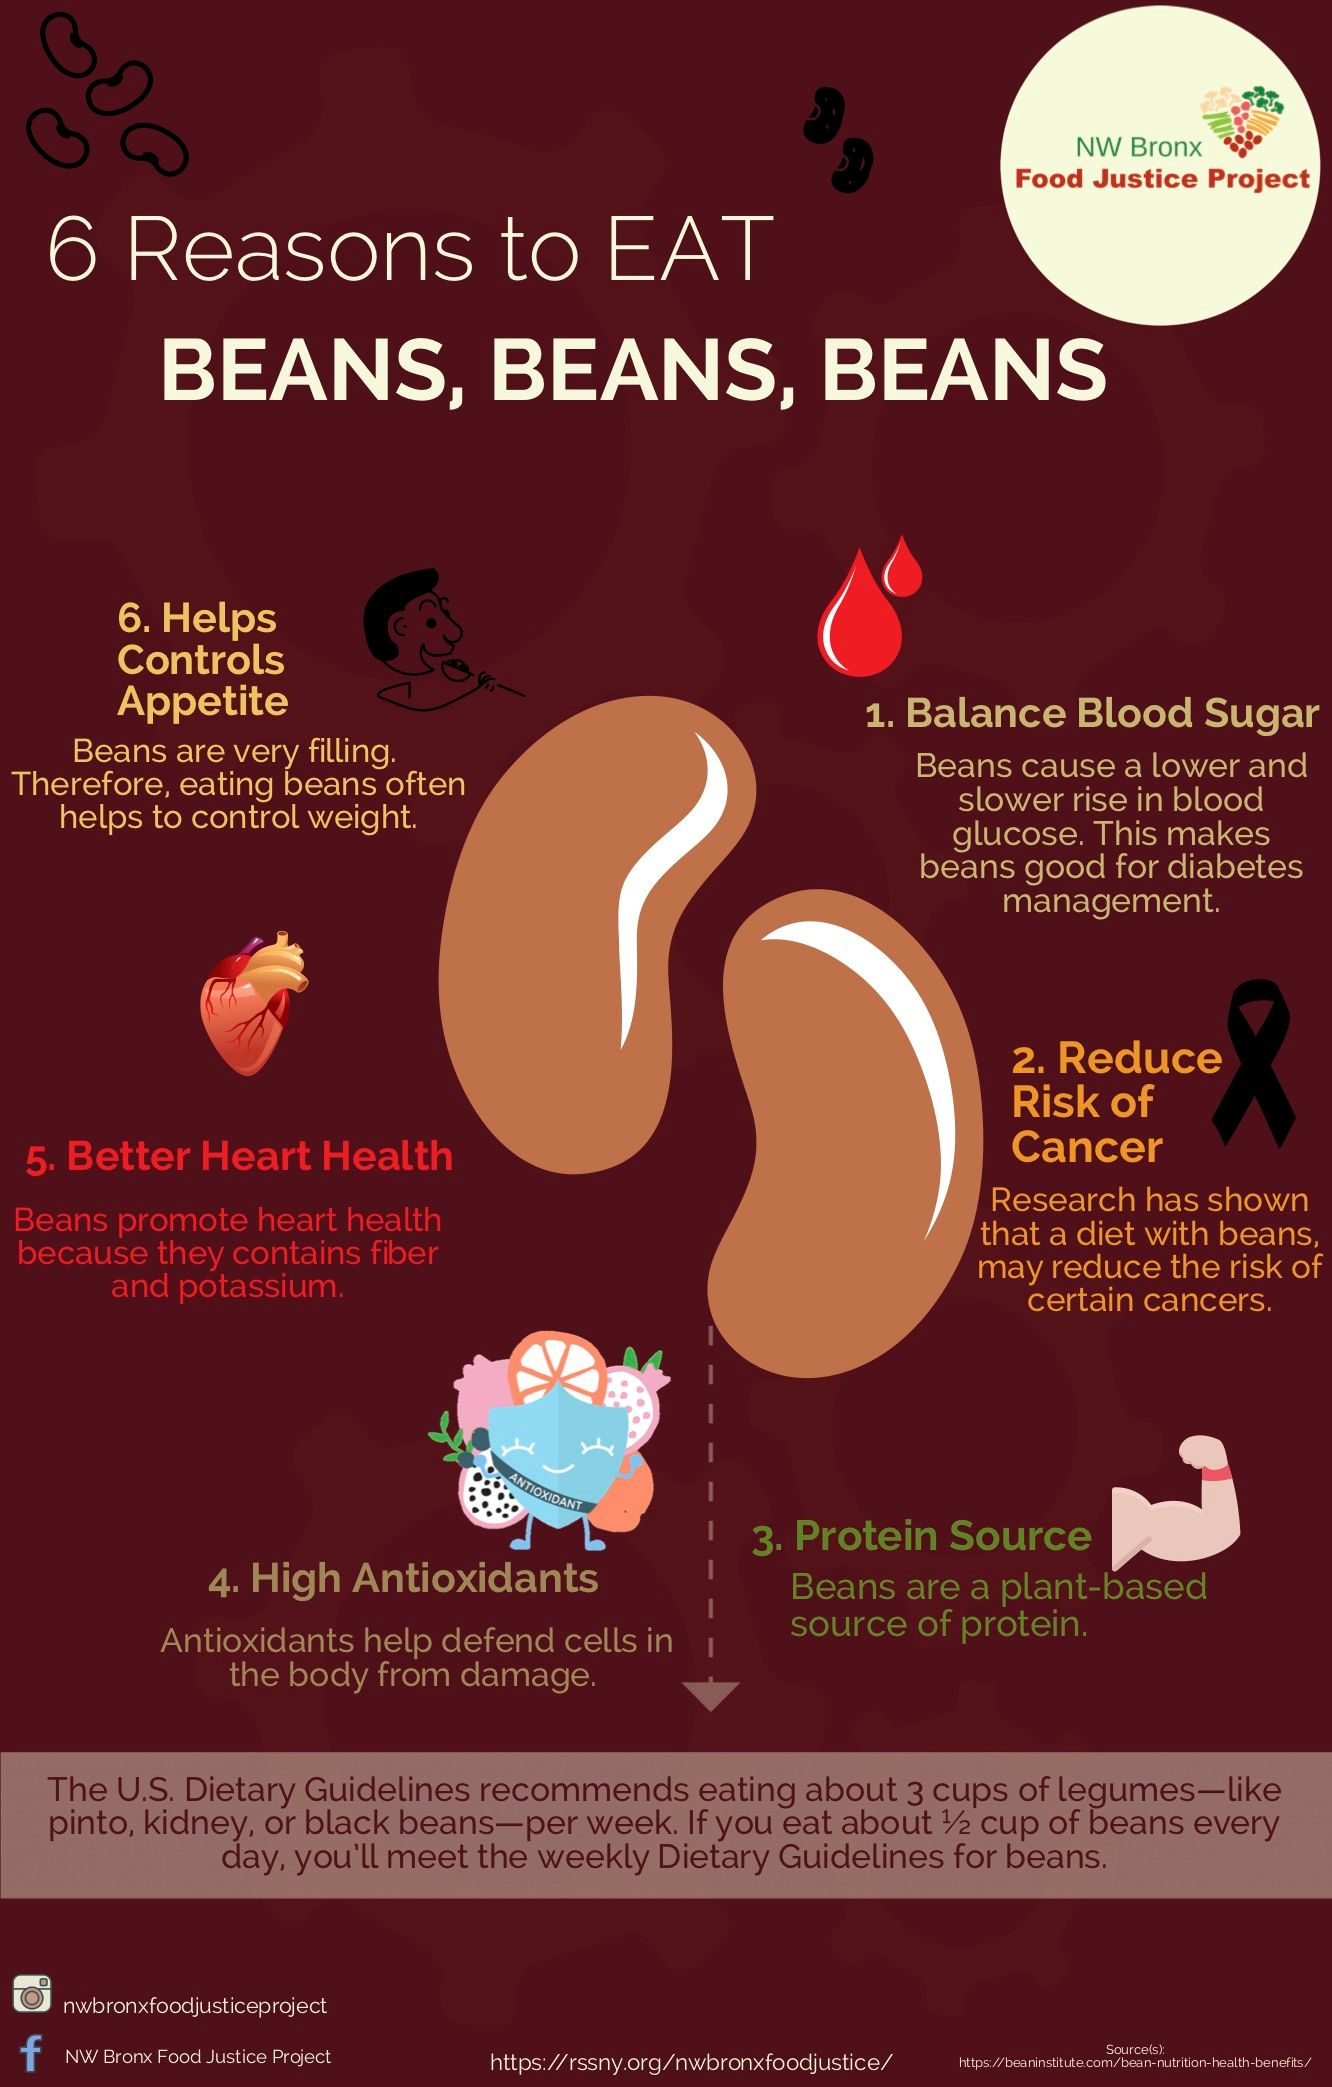 6 Reasons to Eat Beans